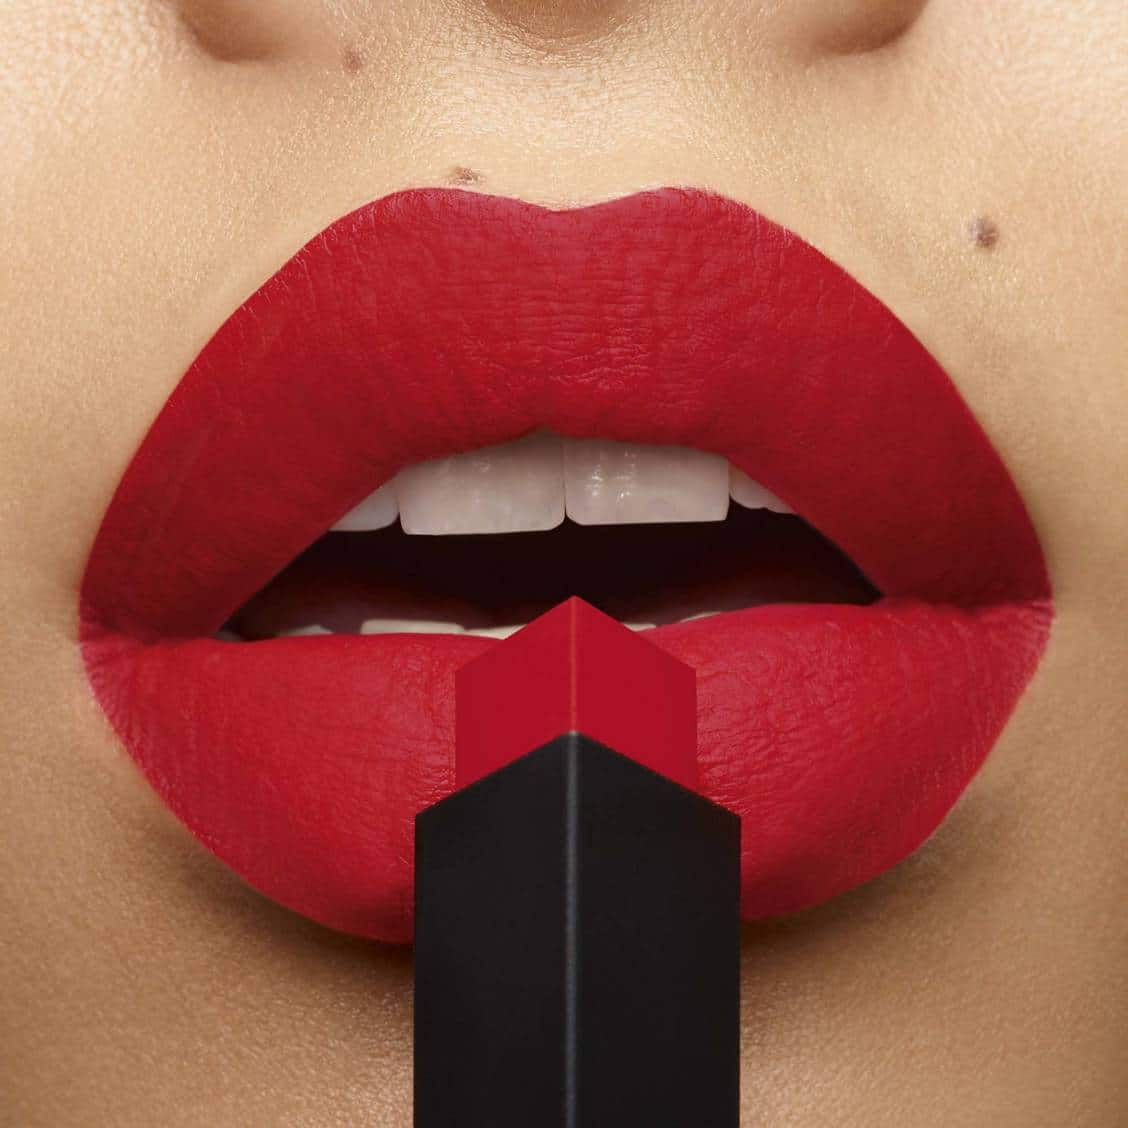 Son Ysl Màu 01 Của Rouge Pur Couture The Slim Matte